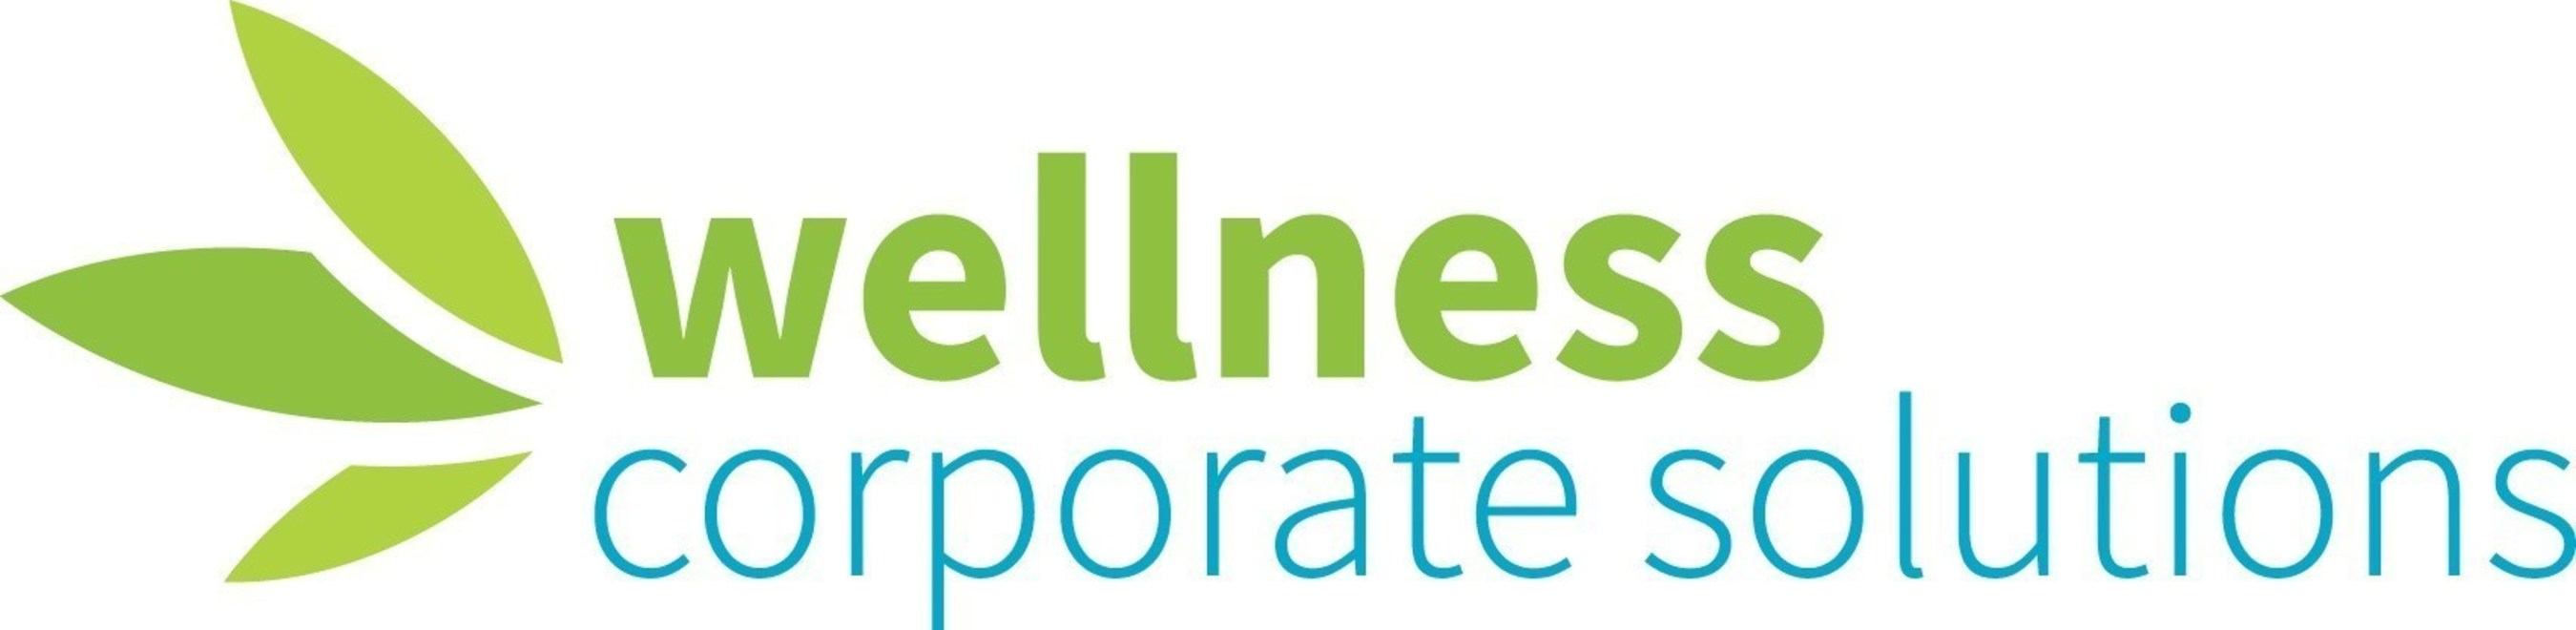 Wellness Corporate Solutions Partners with Zillion to Expand Digital Health Coaching and Patient Engagement